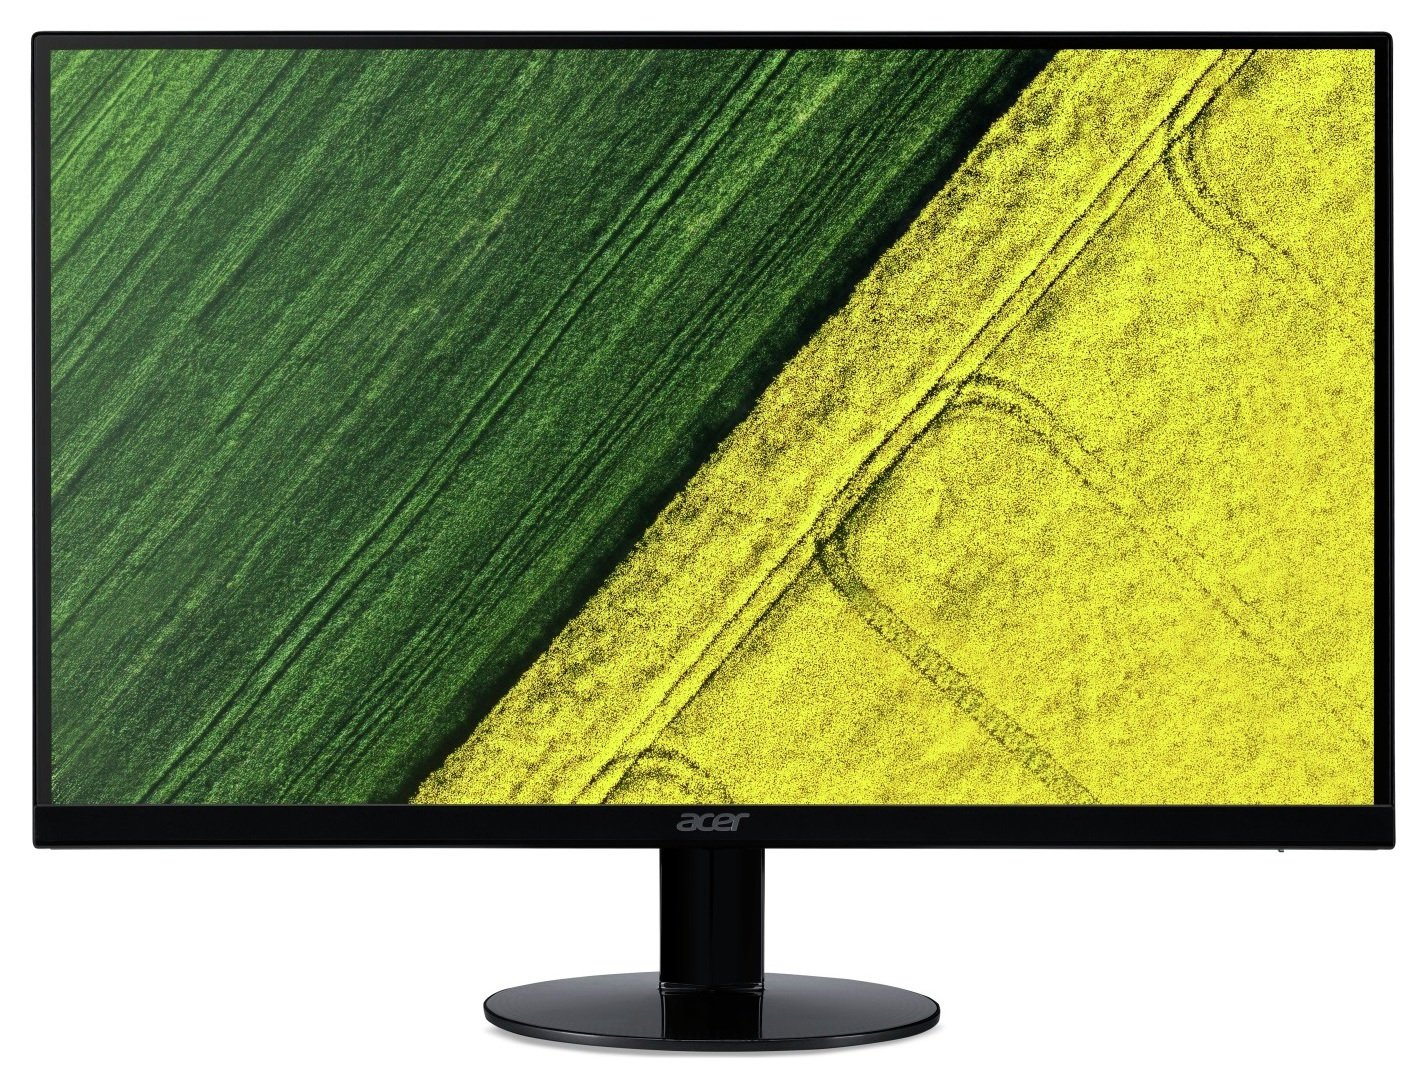 Image of Acer SA24 24 Inch LED ZeroFrame Monitor - Black